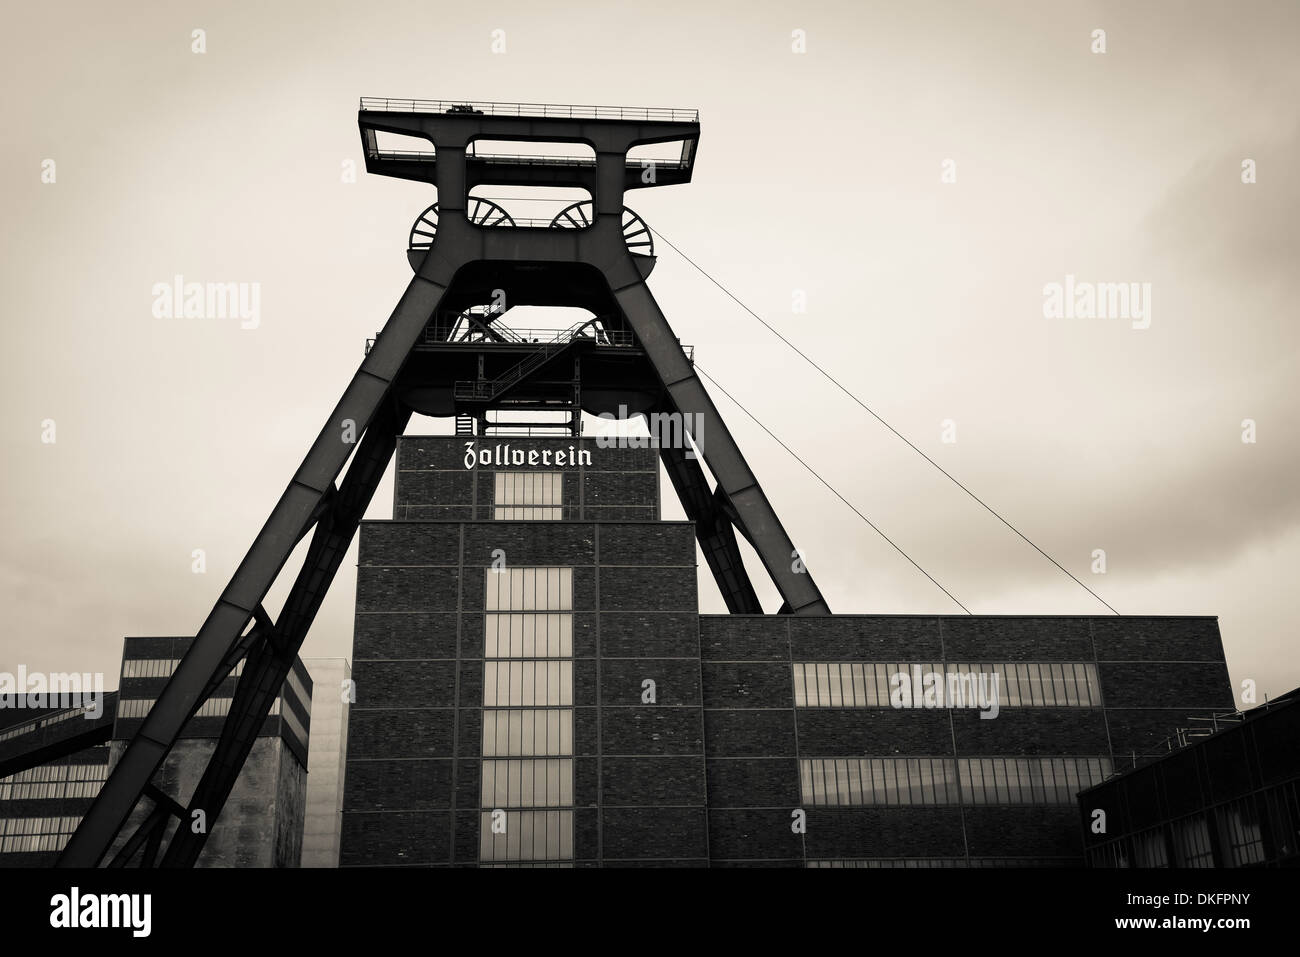 Zentralschachtanlage, Zeche Zollverein, Essen, North Rhine-Westphalia, Germany, Europe - Stock Image